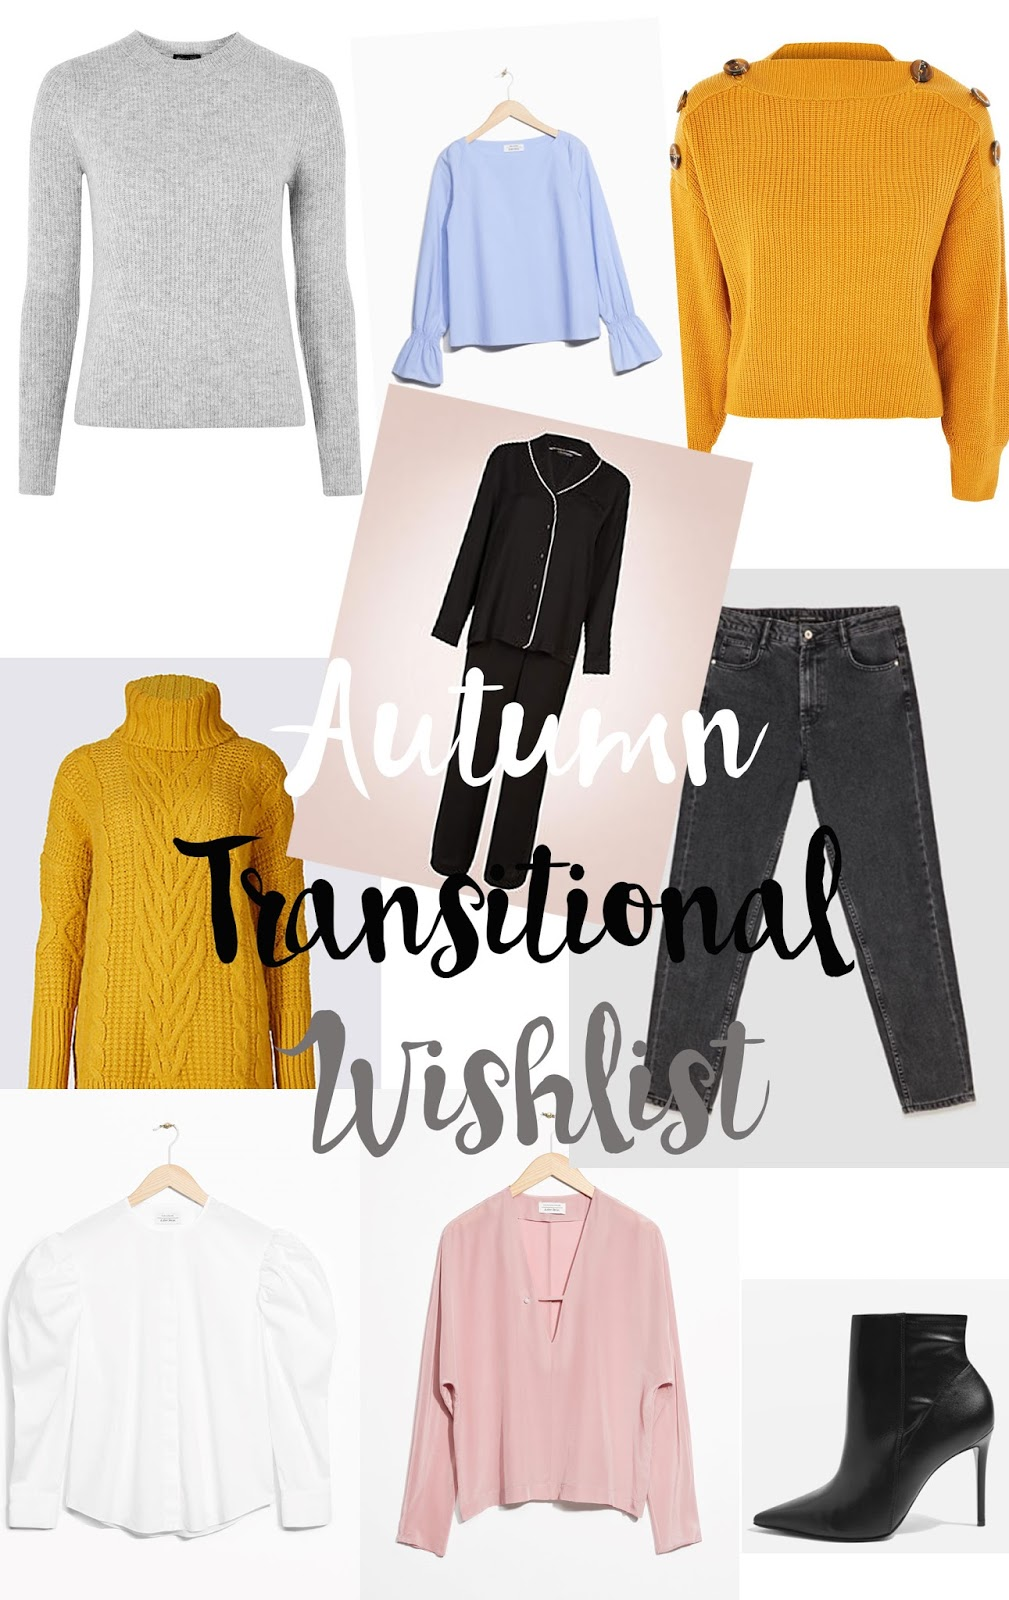 autumn transitional clothes wishlist